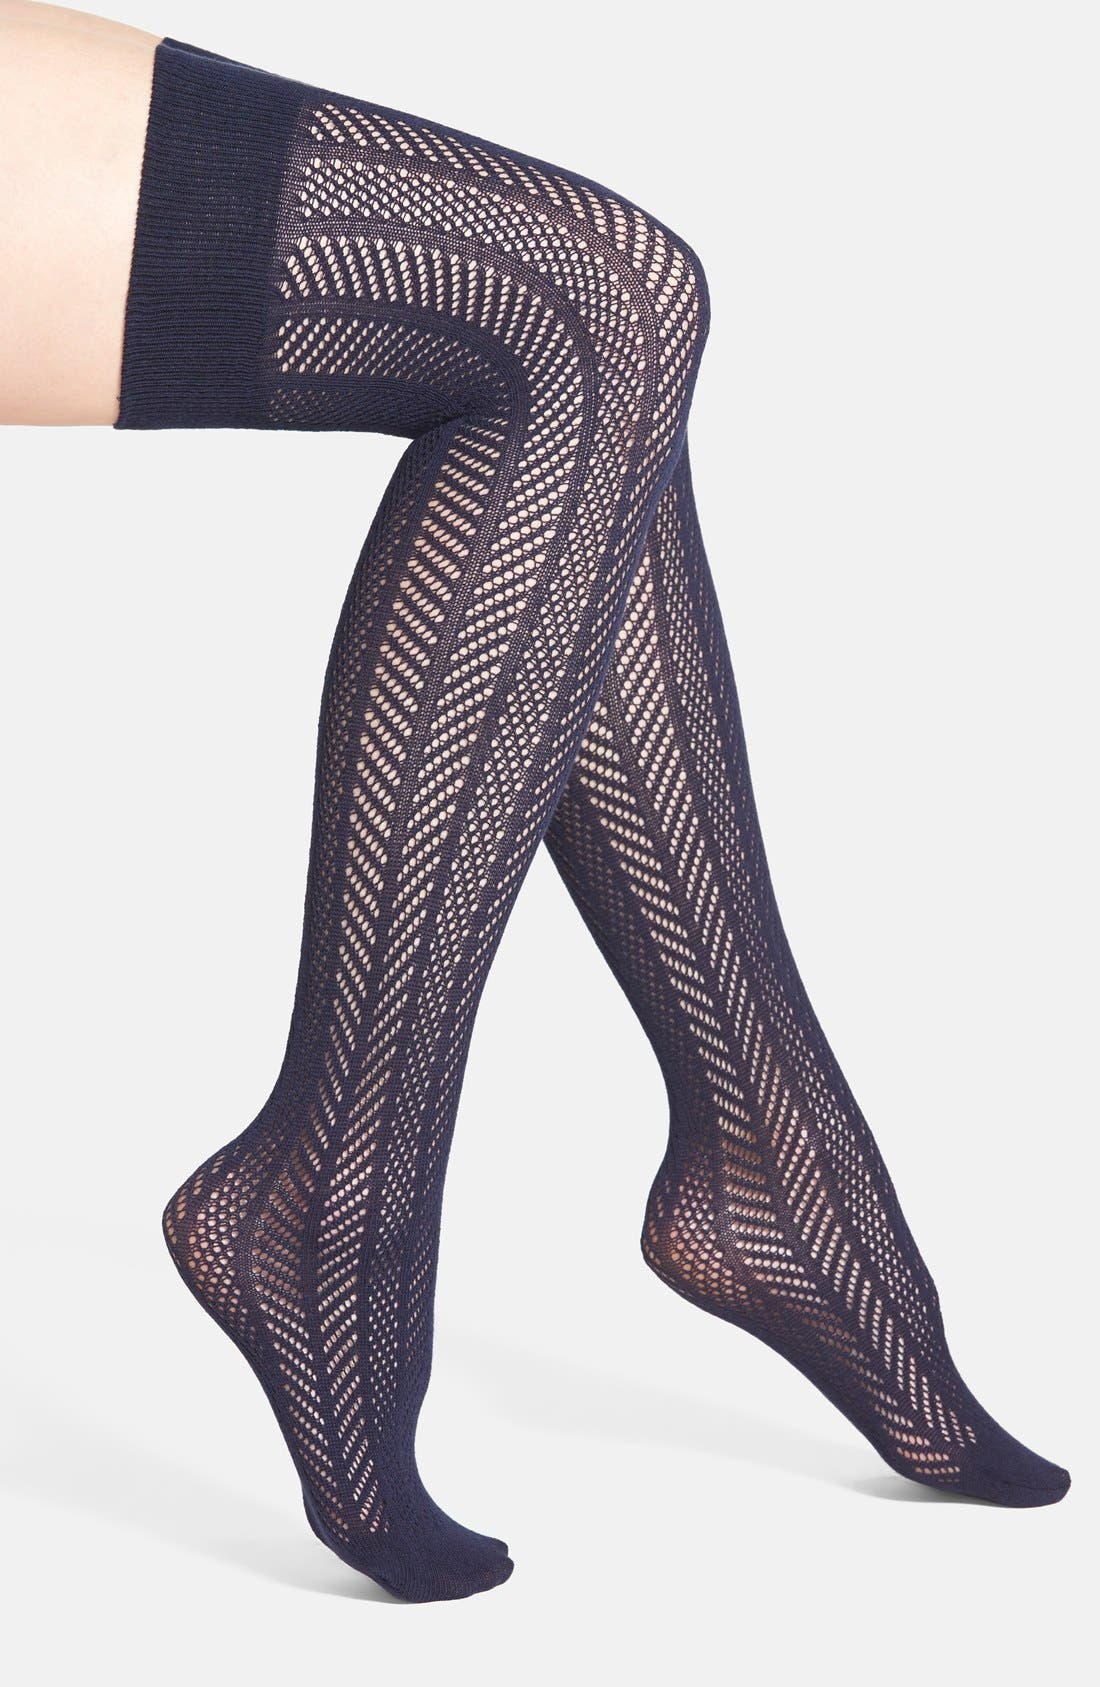 Alternate Image 1 Selected - Vince Camuto Openwork Knit Thigh High Socks (Online Only)